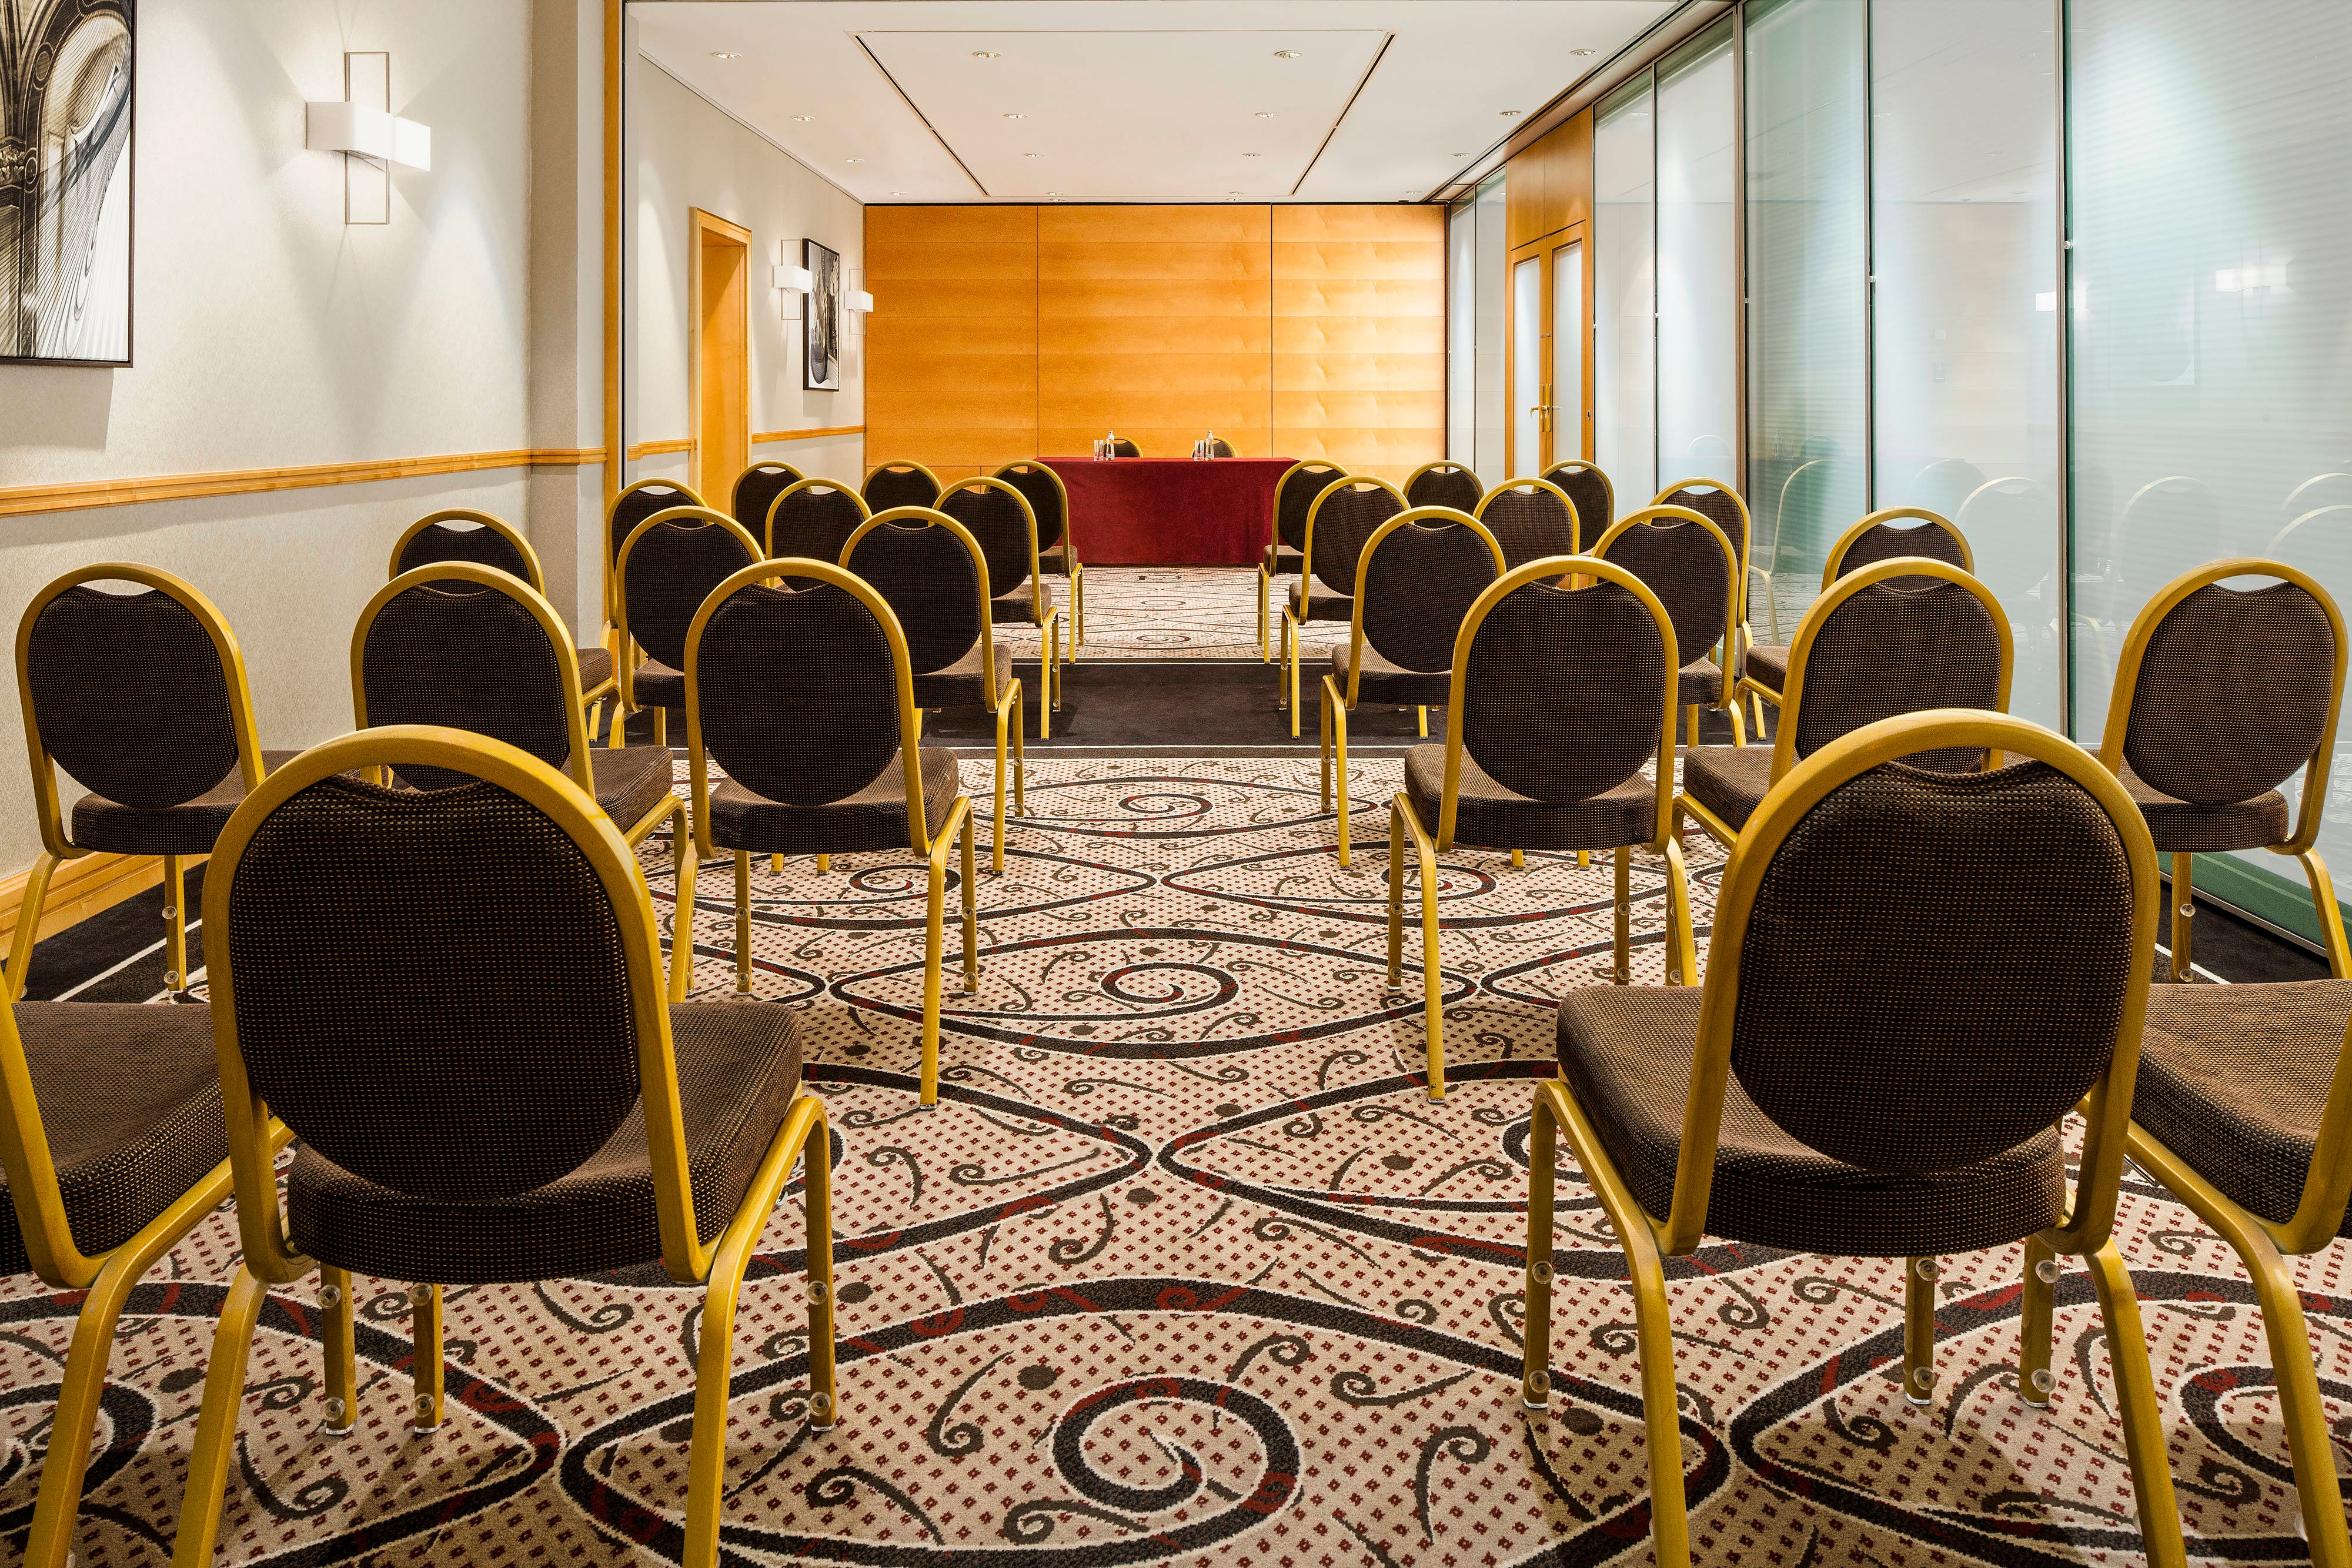 Meeting rooms in Vienna, Austria